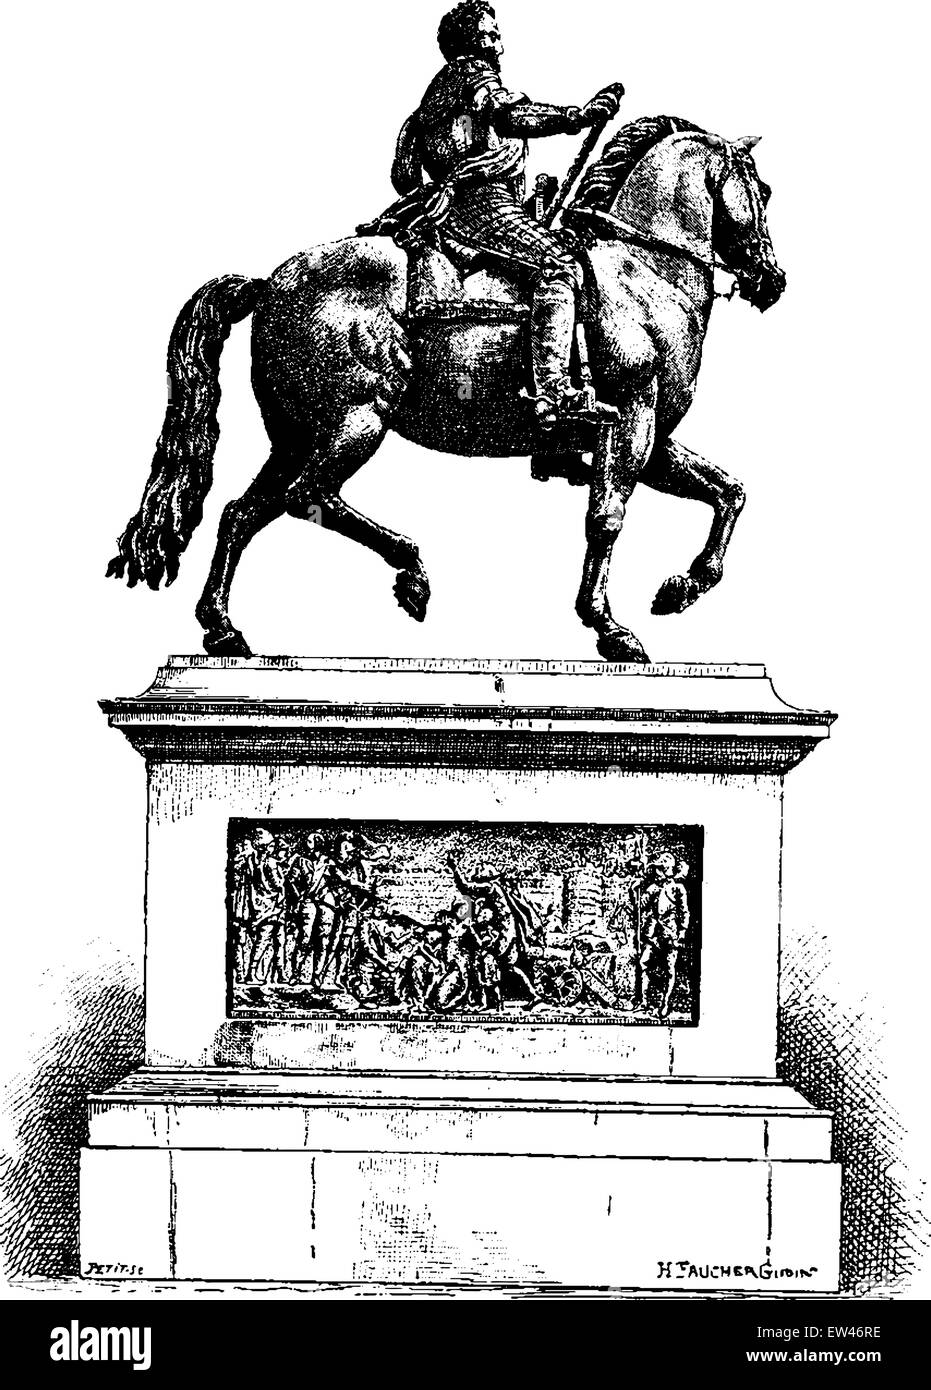 Statue of Henri IV on the Pont Neuf, vintage engraved illustration. Paris - Auguste VITU – 1890. - Stock Vector